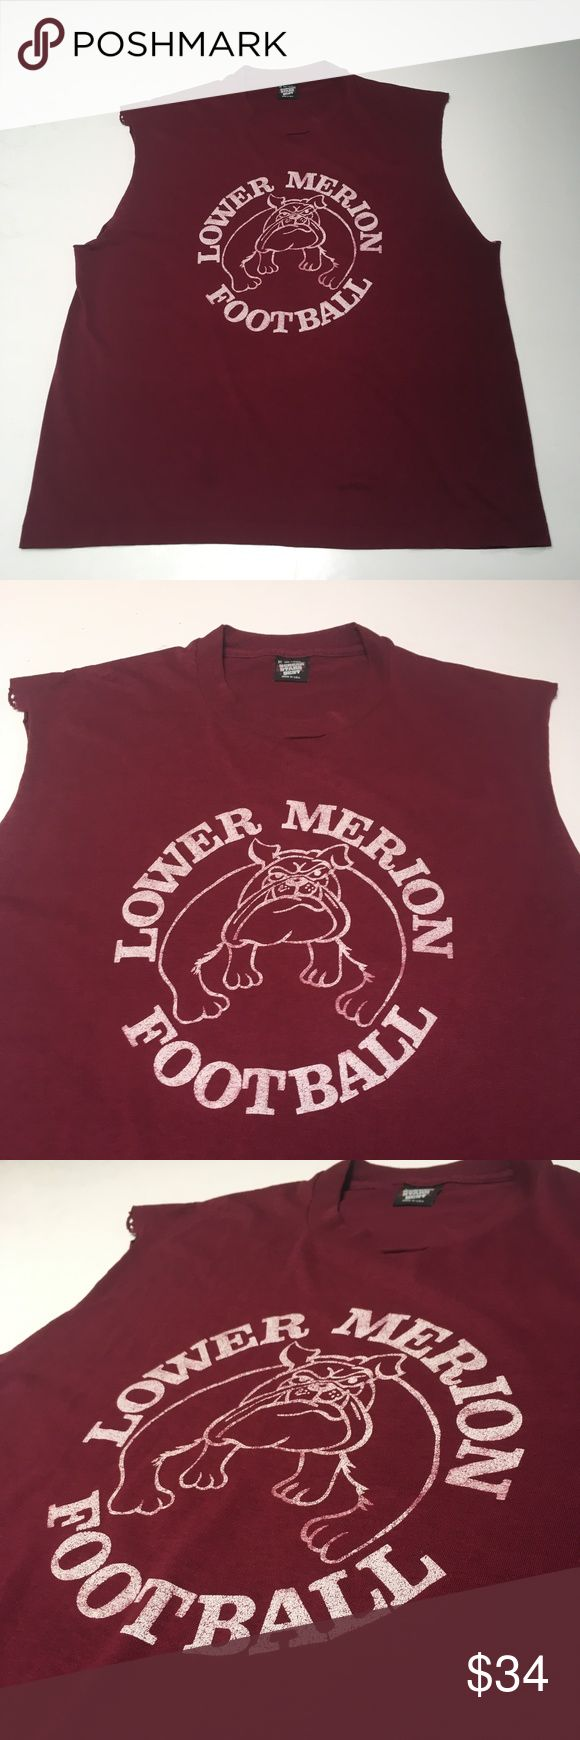 VTG 80s Lower Merion High Football Kobe Bryant If Kobe played football he would've rocked this. From his high school in Philly. Shows wear but plenty of first downs left  Please check measurements in pics to ensure fit  Smoke and pet free environment Happy to answer any questions or provide more images  Thanks for looking and Happy Poshing! Vintage Shirts Tees - Short Sleeve